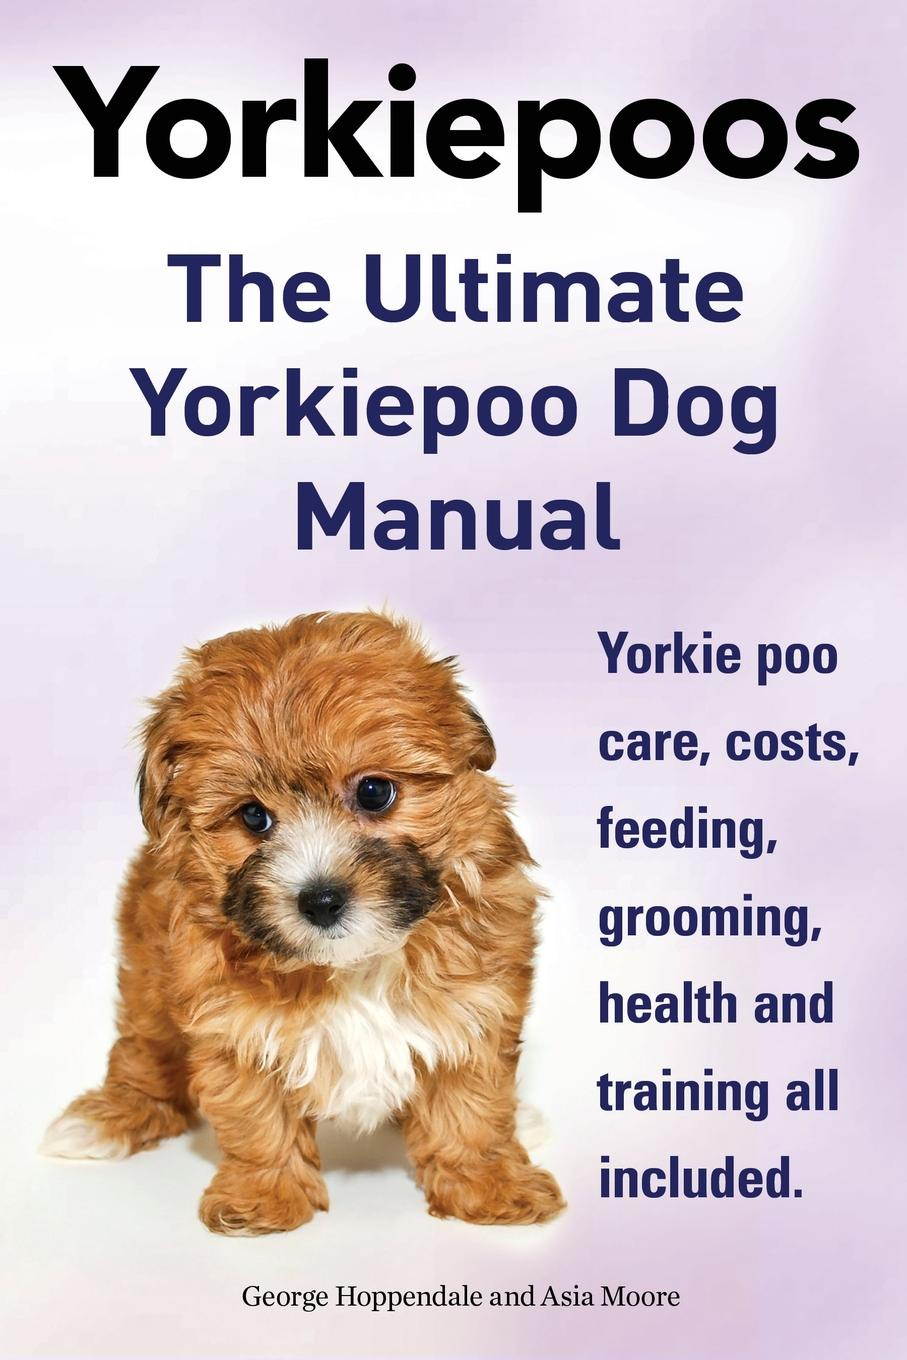 George Hoppendale, Asia Moore Yorkie Poos. the Ultimate Yorkie Poo Dog Manual. Yorkiepoo Care, Costs, Feeding, Grooming, Health and Training All Included. недорго, оригинальная цена